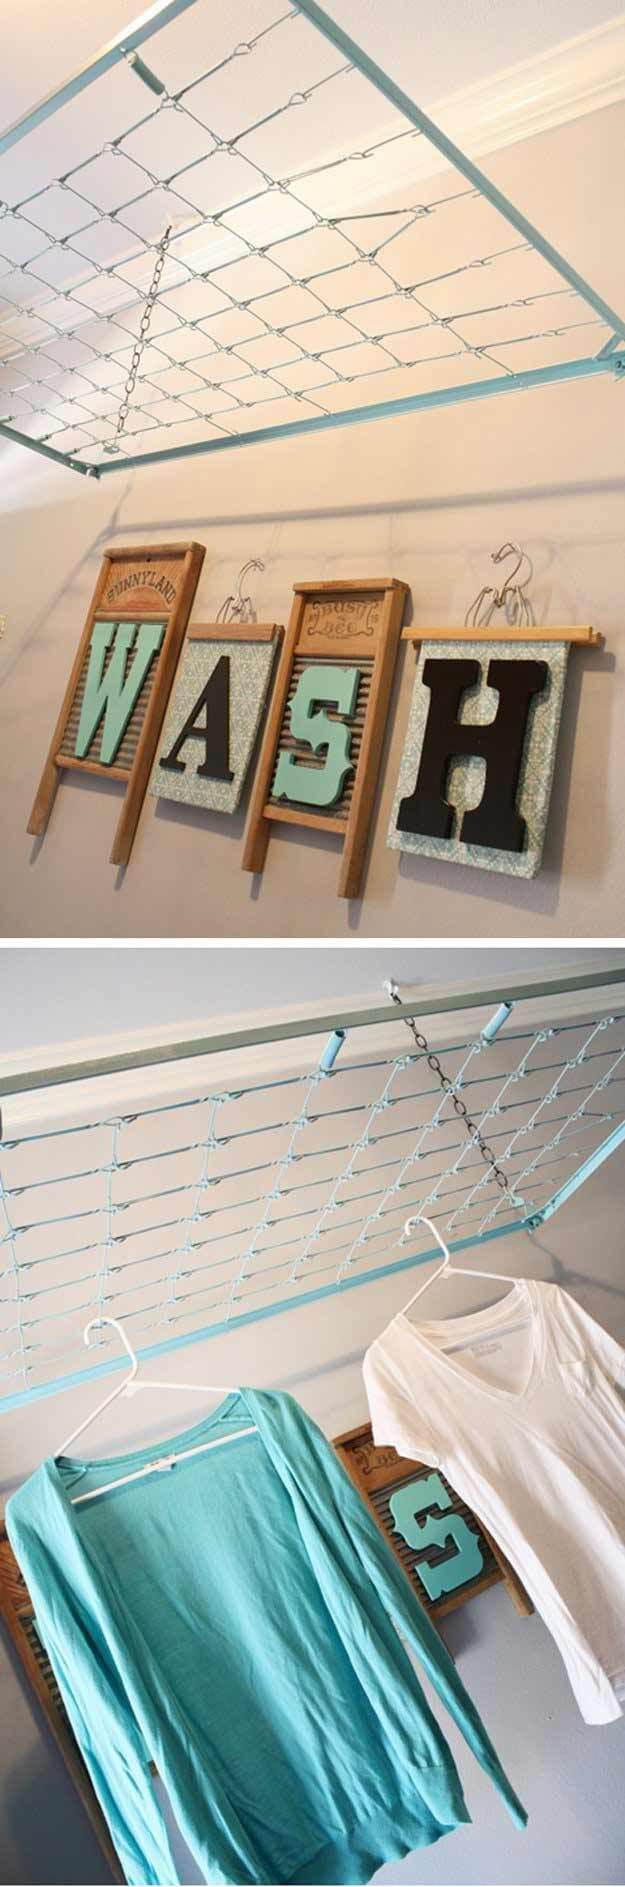 how to make a washboard at home